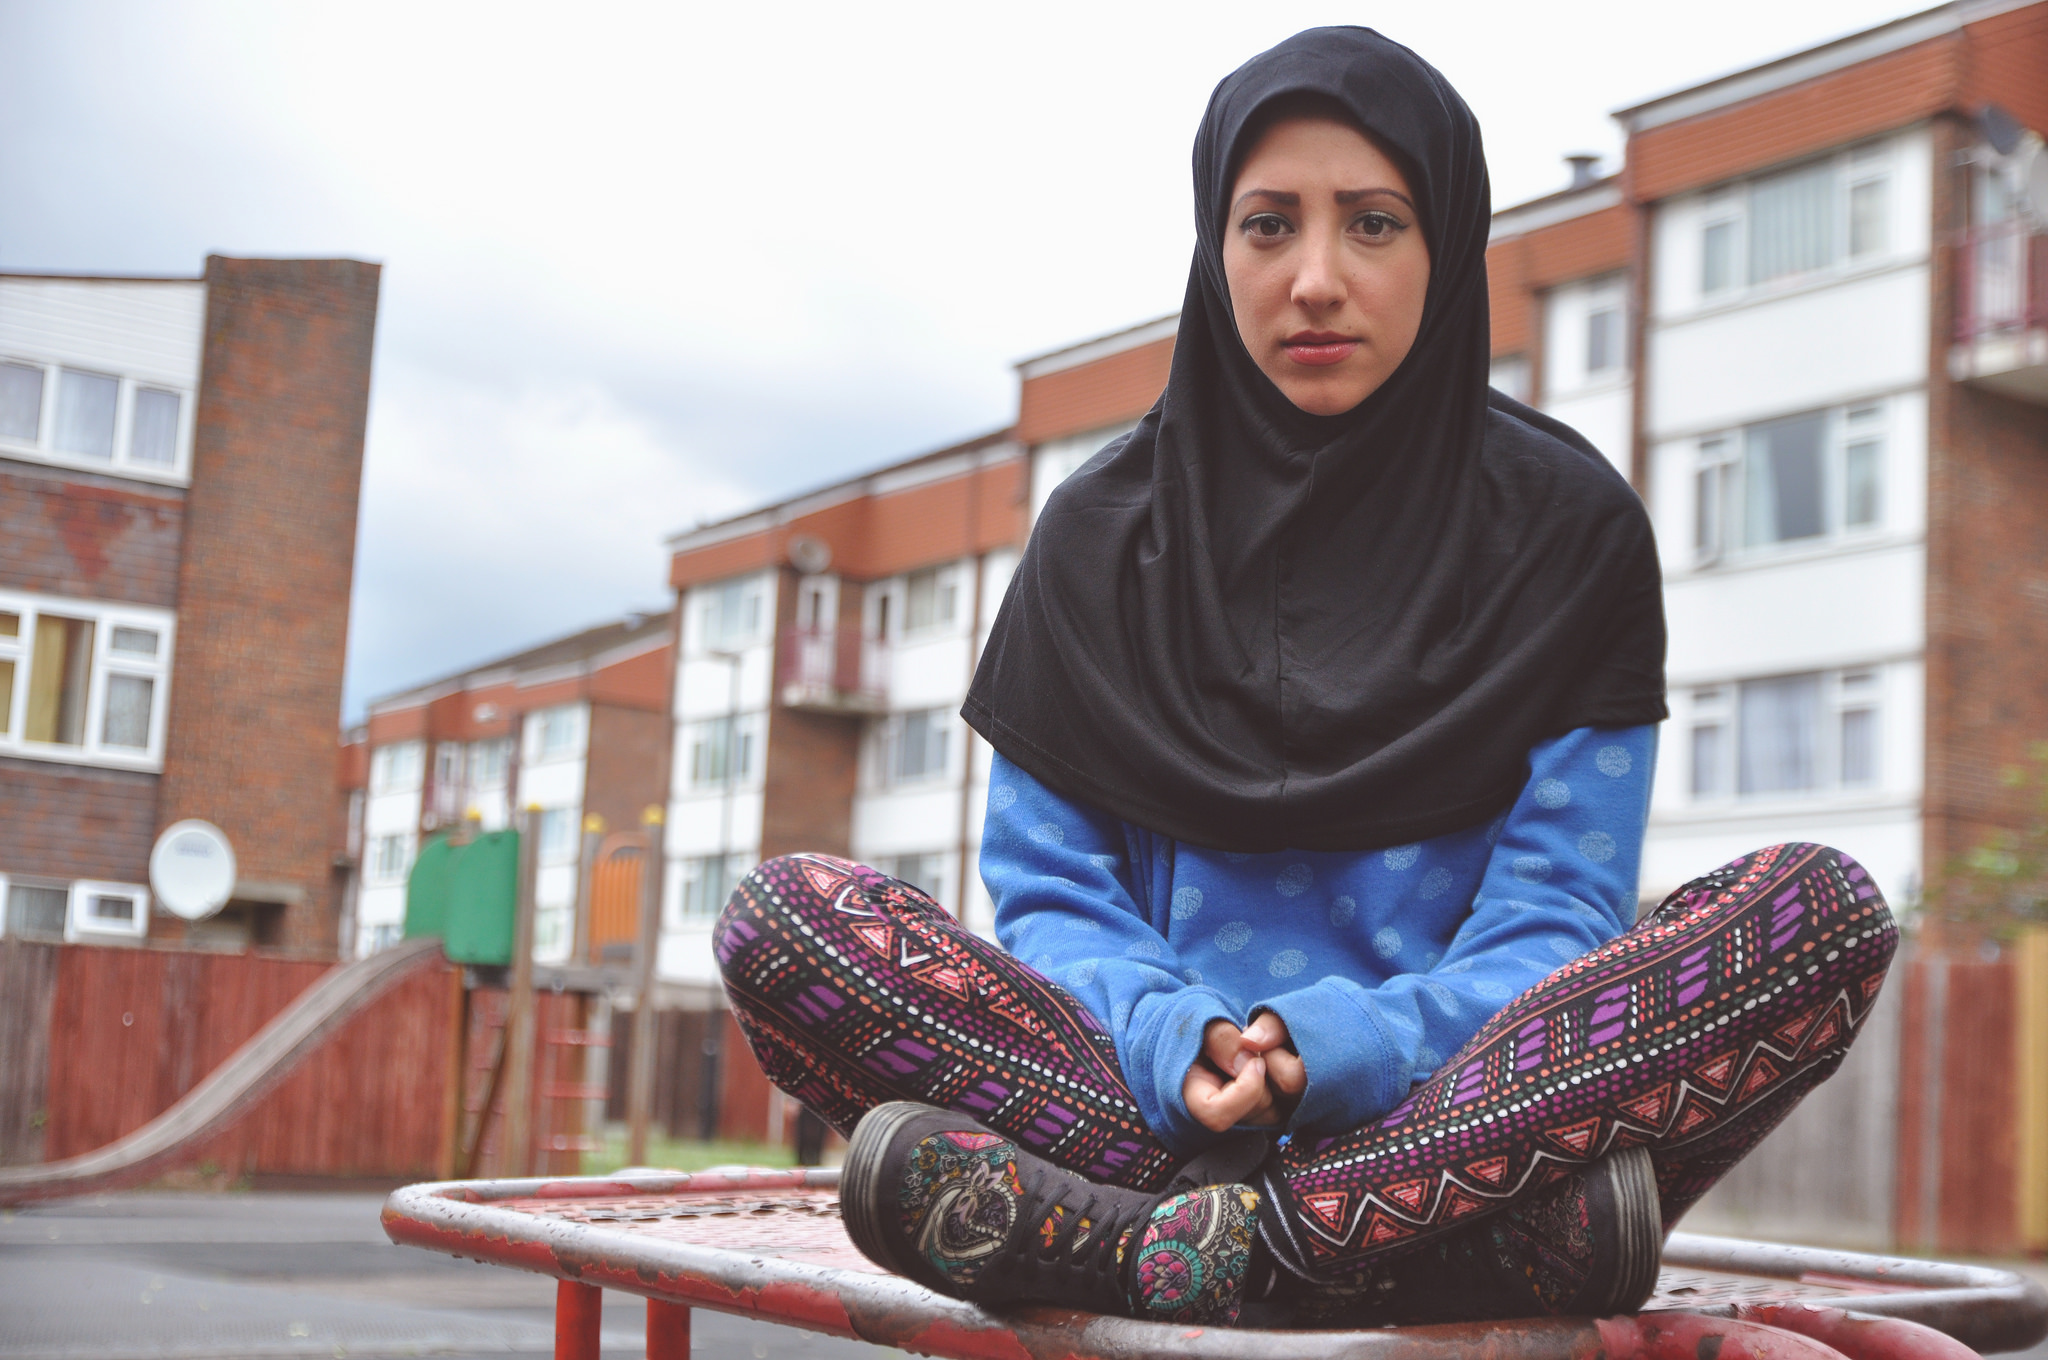 ether muslim girl personals A lot of people in the muslim community don't like to use words like 'girlfriend,' 'boyfriend,' or 'dating' they prefer to use things like 'understanding,' or 'growing together,'  she says.